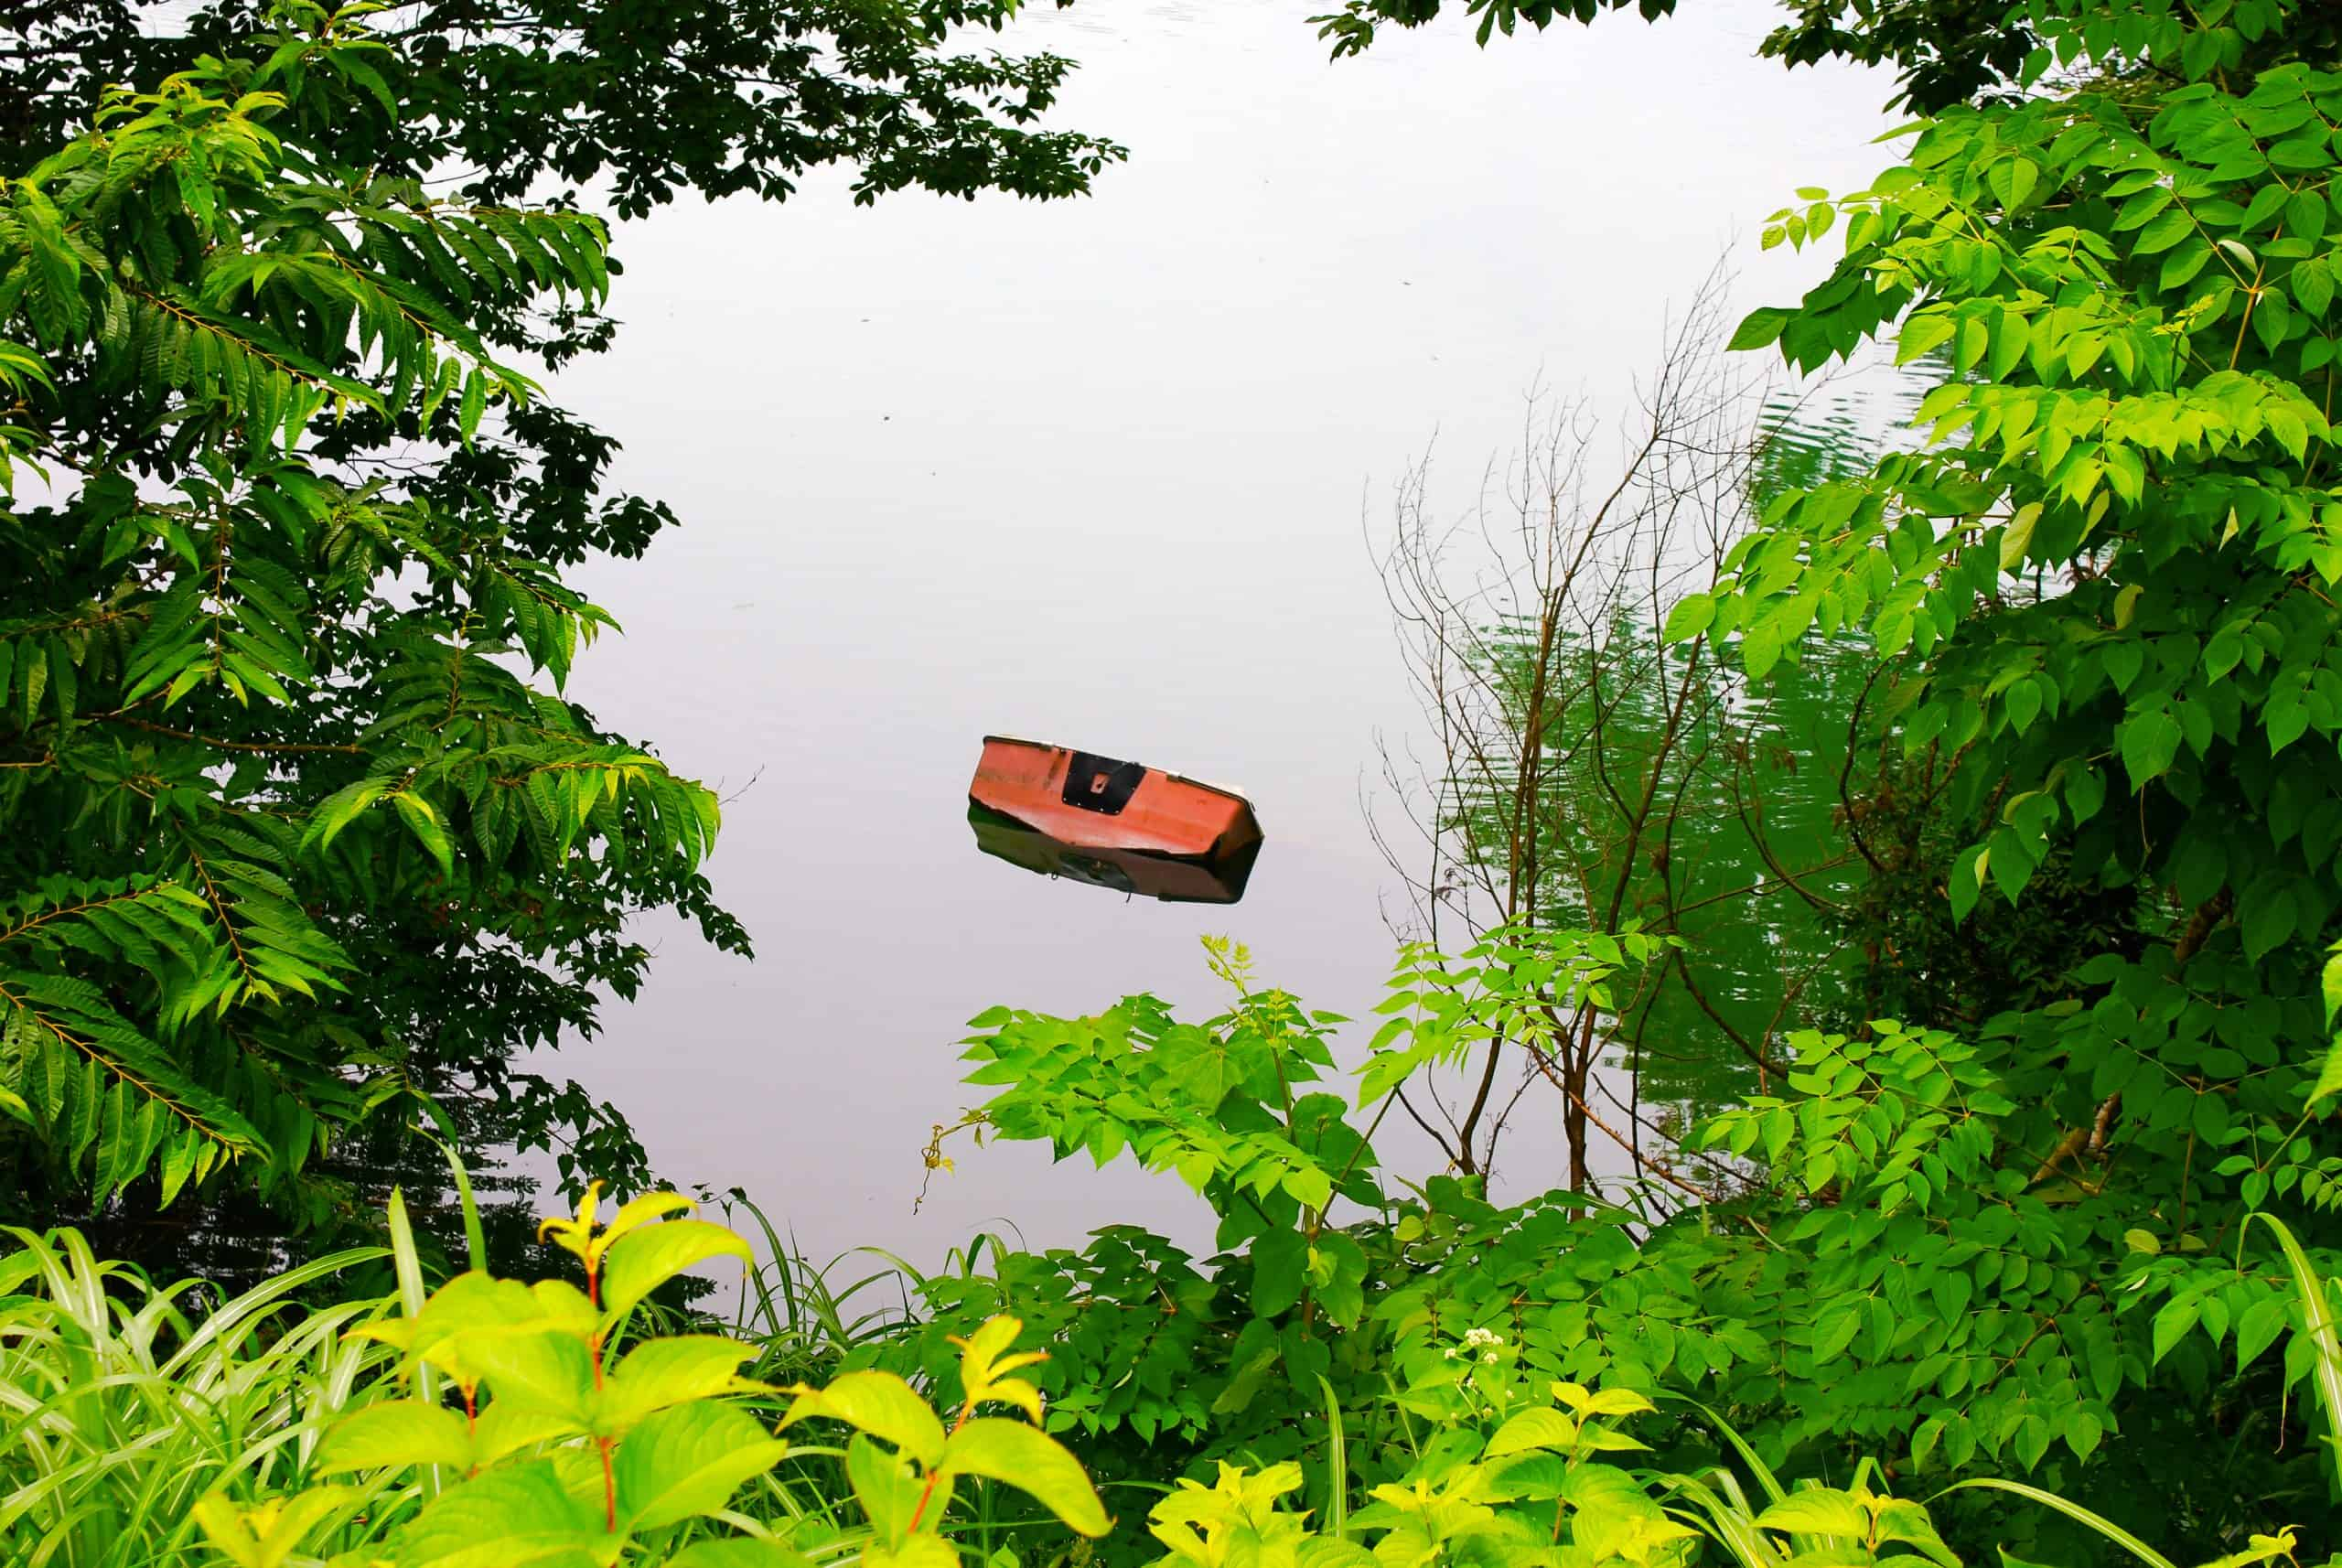 Half sunken boat in water encircled by lush greener